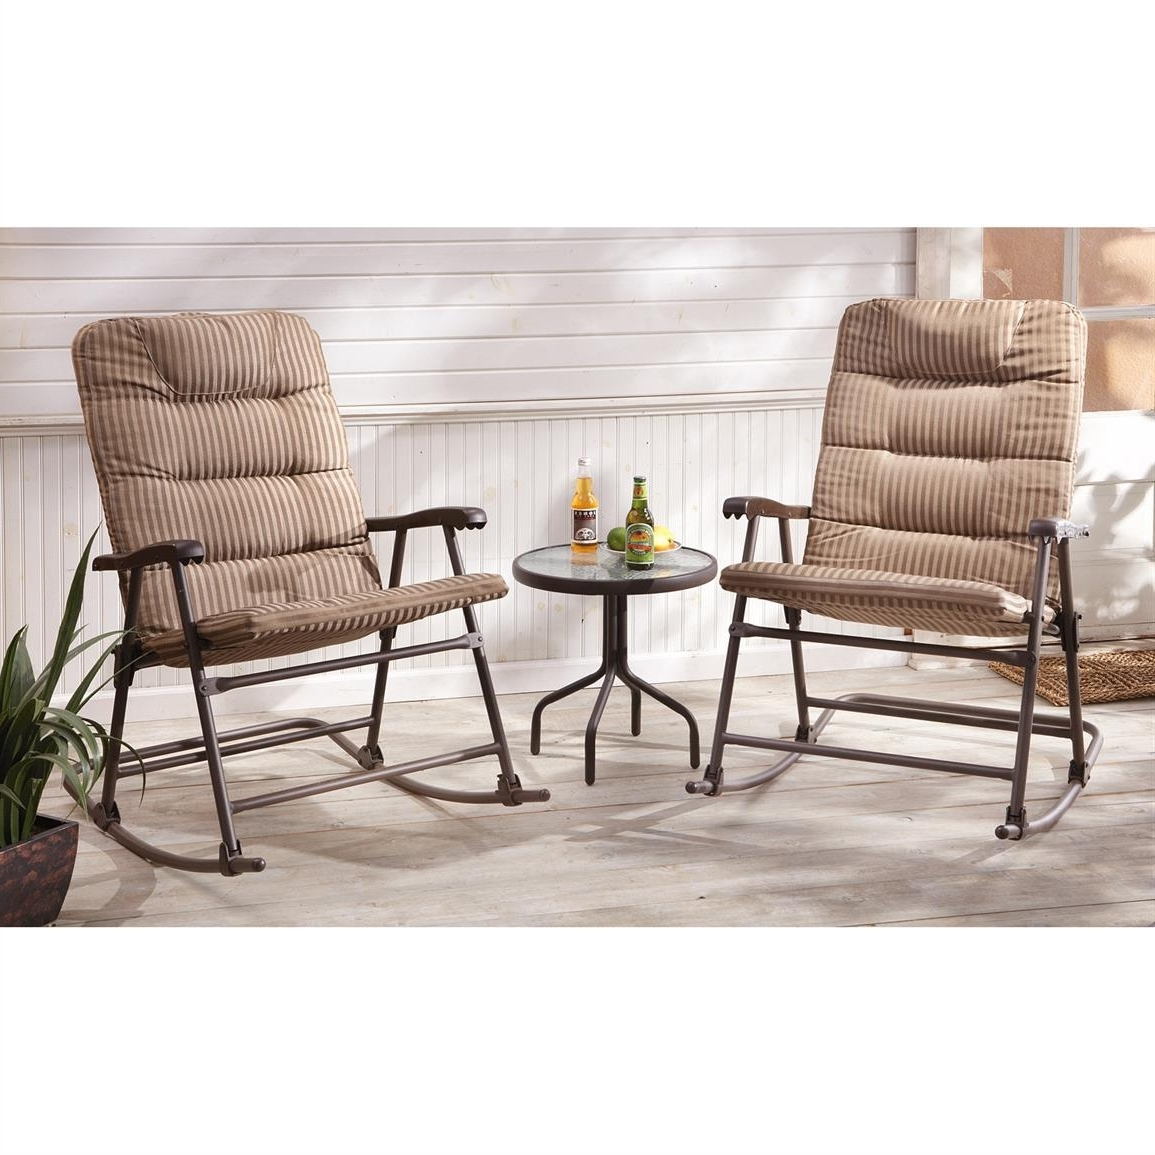 Trendy Outside Rocking Chair Sets Pertaining To Castlecreek Padded Outdoor Rocking Chair Set, 3 Piece –  (View 11 of 15)